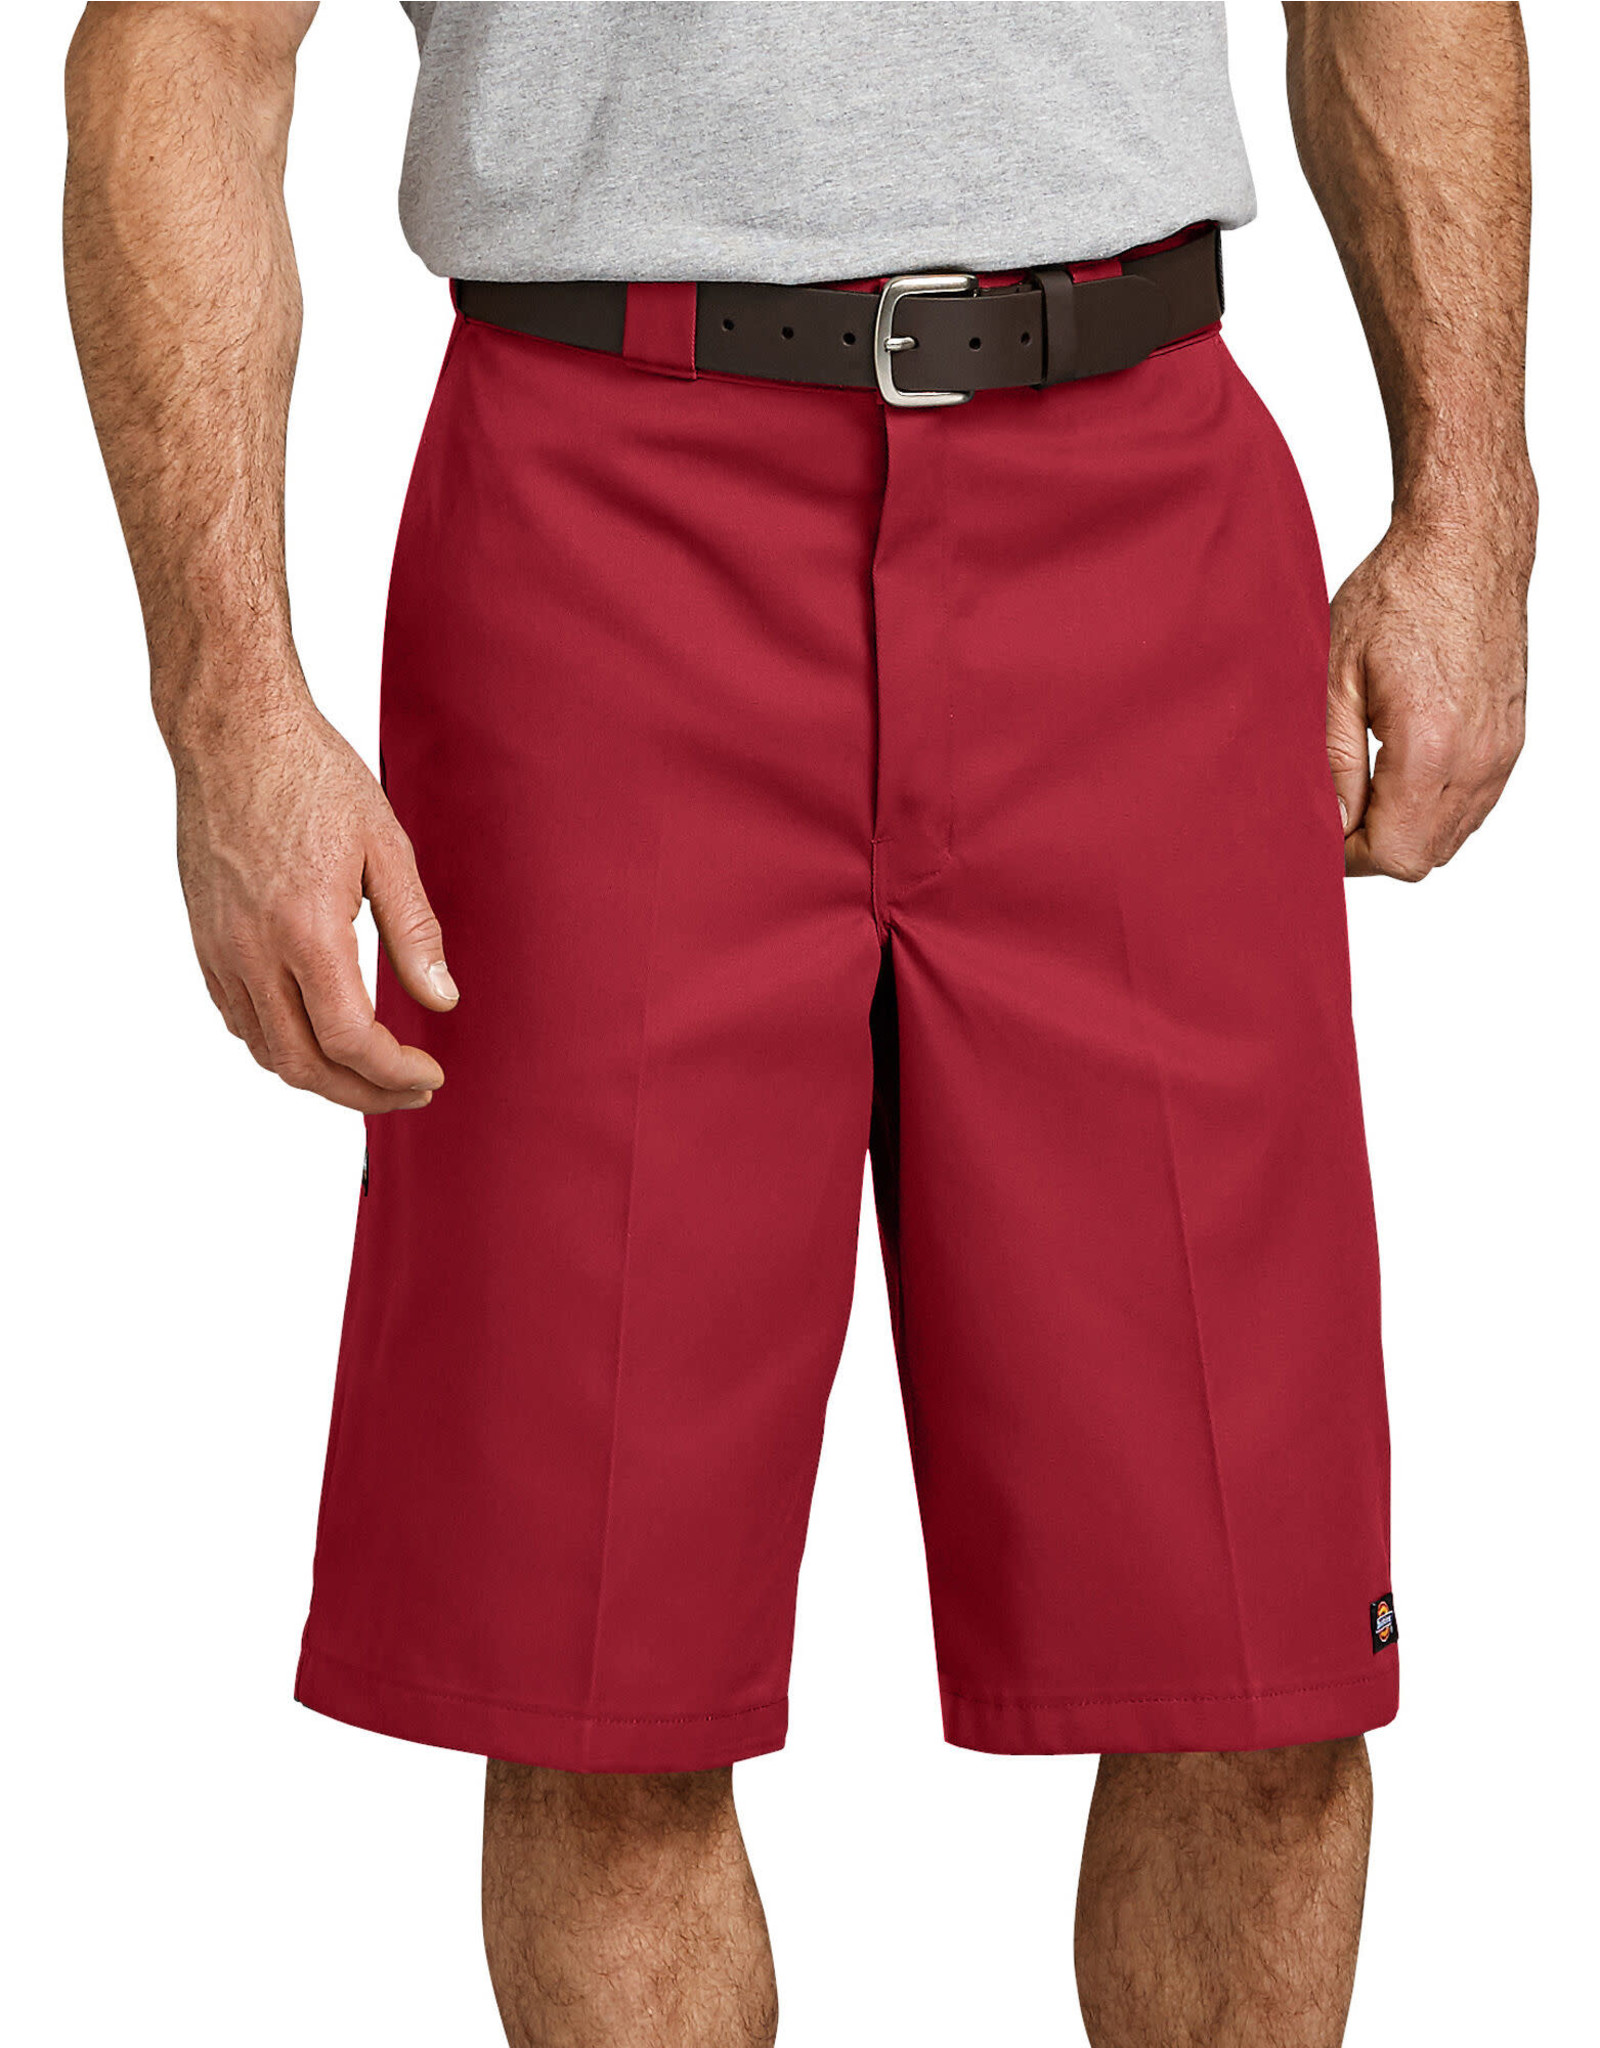 DICKIES Loose Fit Cotton/Polyester Short 42283